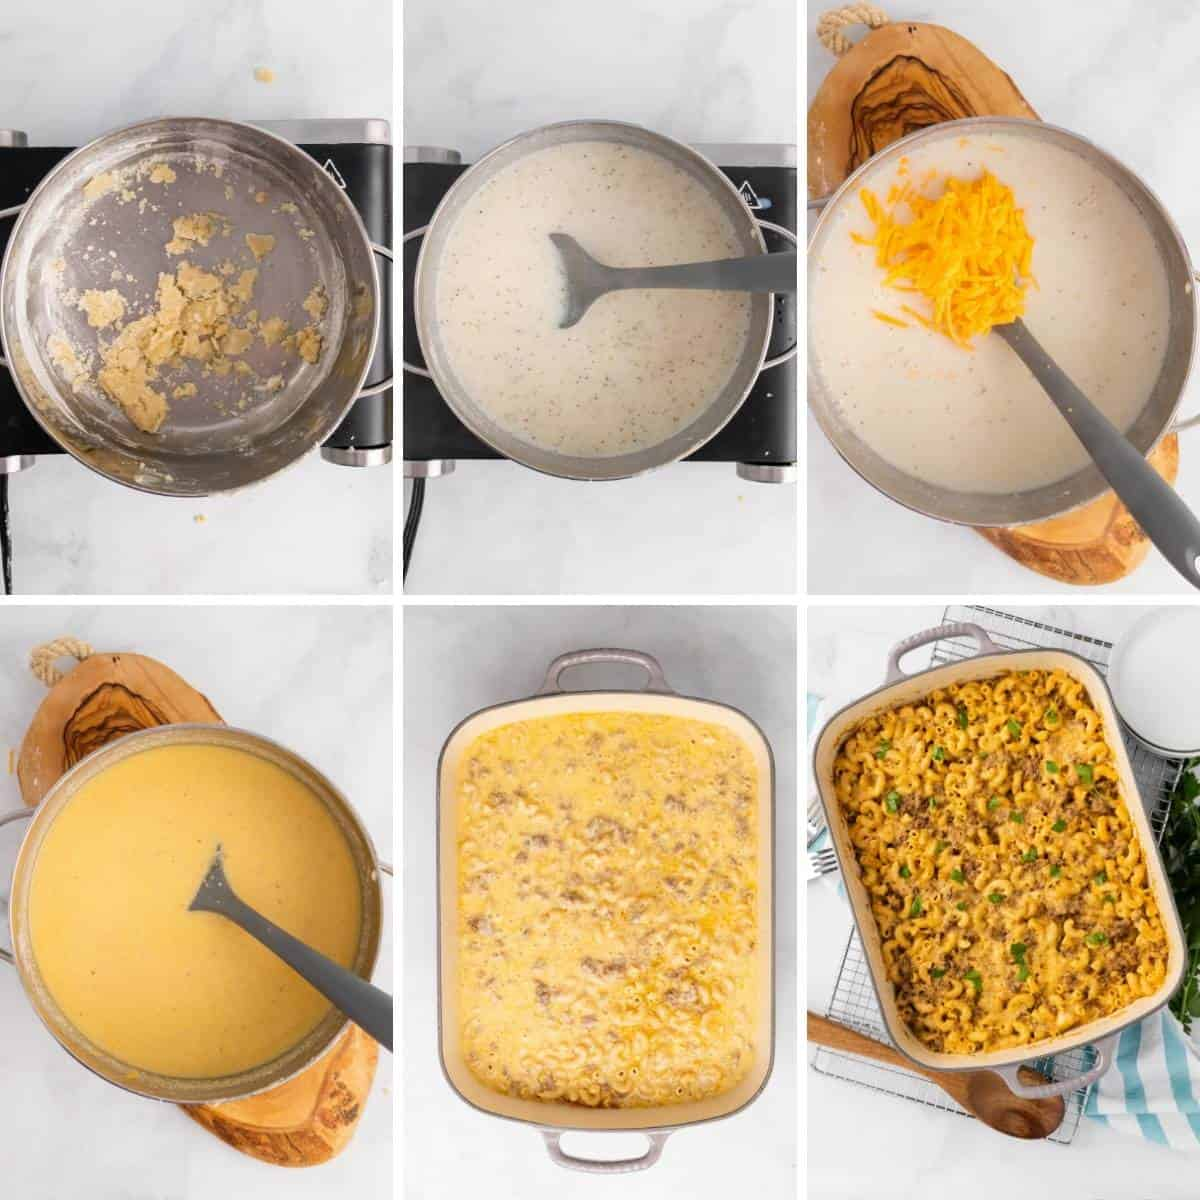 a second collage showing the last 6 steps to making this hamburger casserole bake.